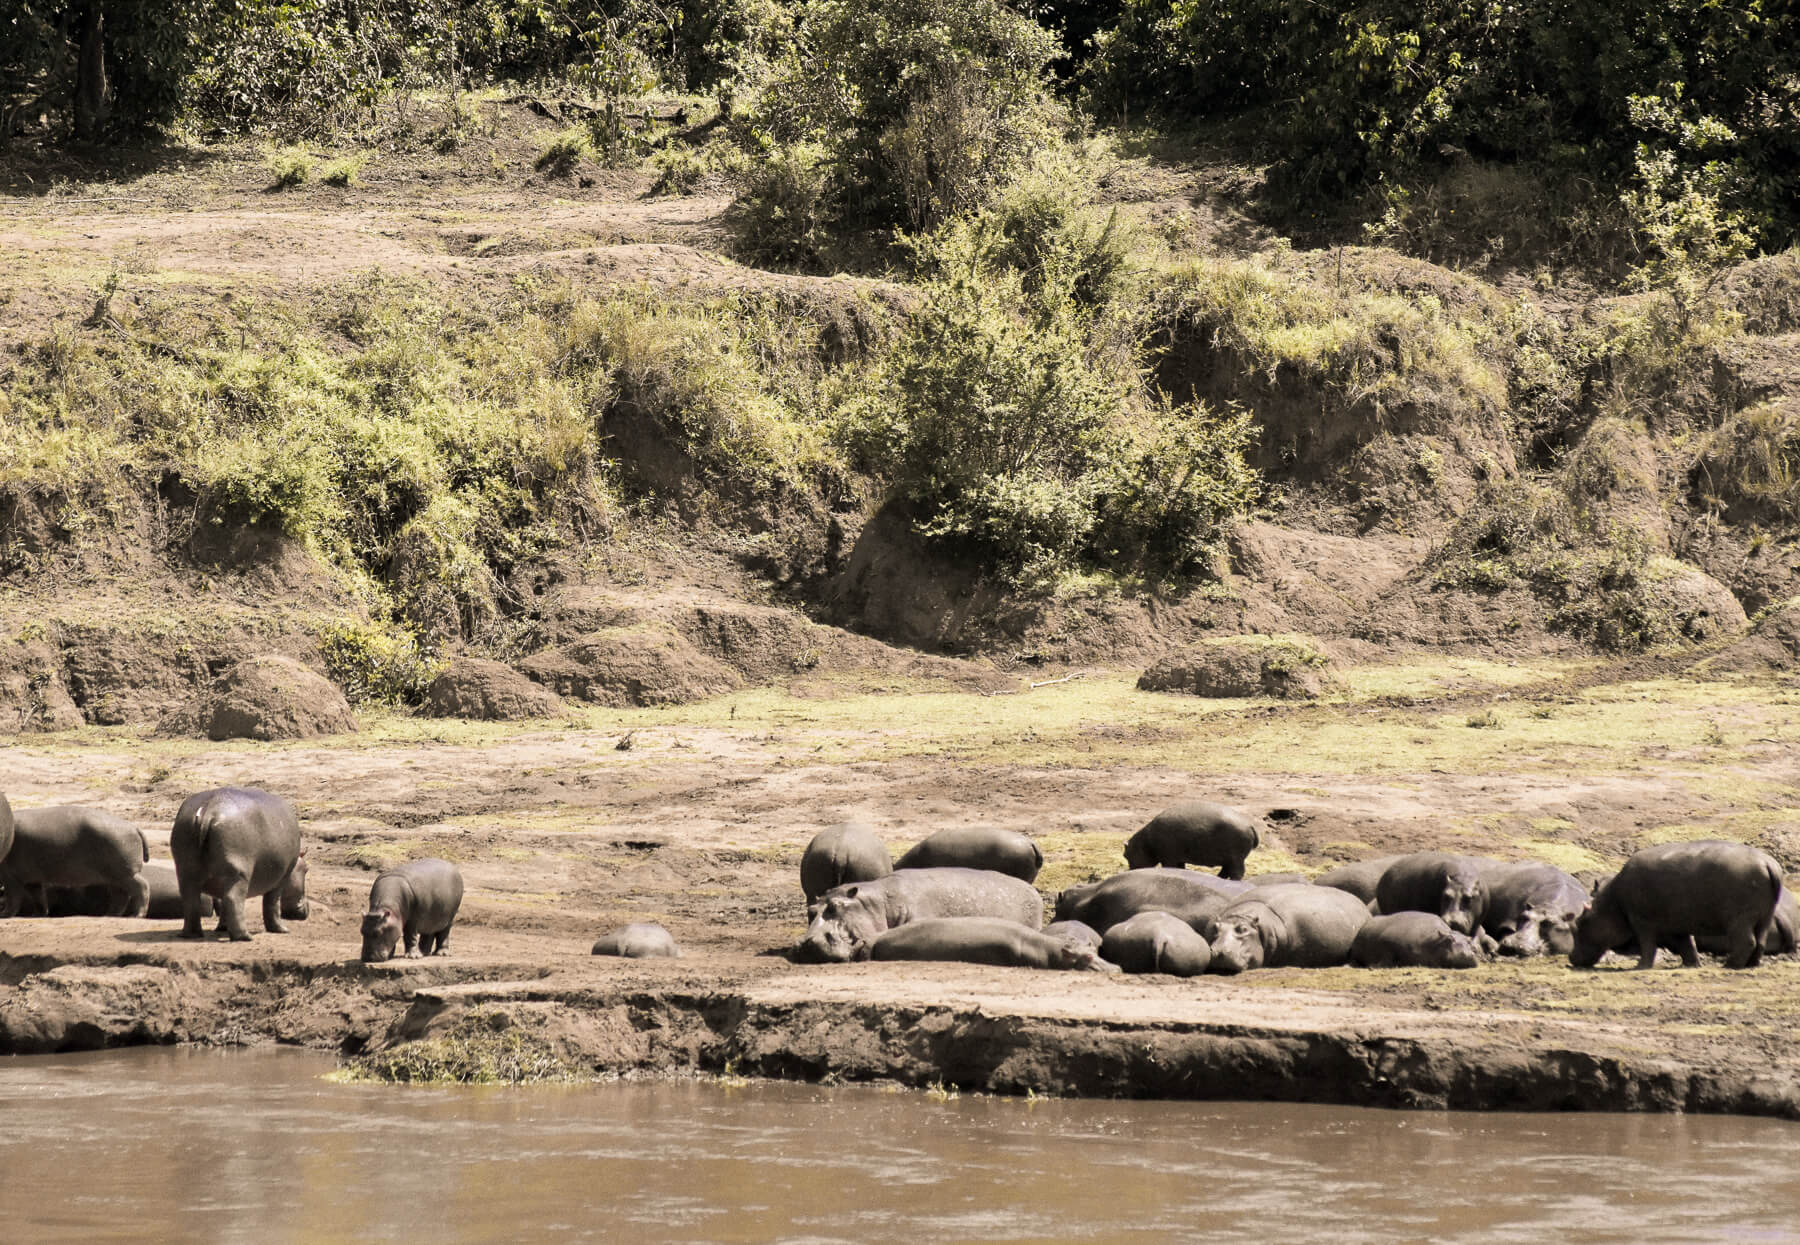 A huge group of hippos sleeping on the banks of the Mara River in the sunshine